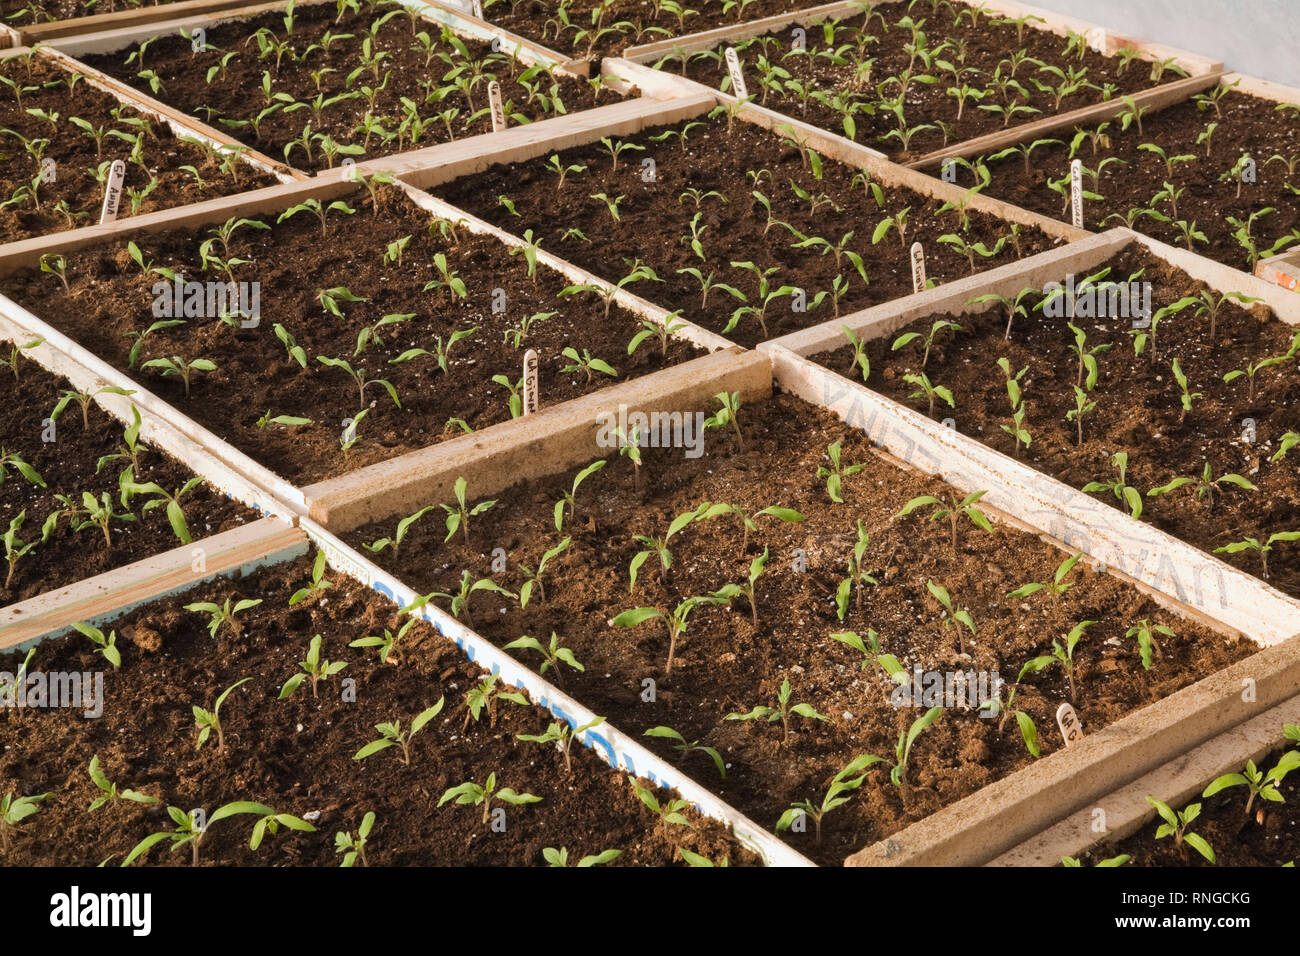 Seedlings growing in wooden trays inside a commercial greenhouse - Stock Image